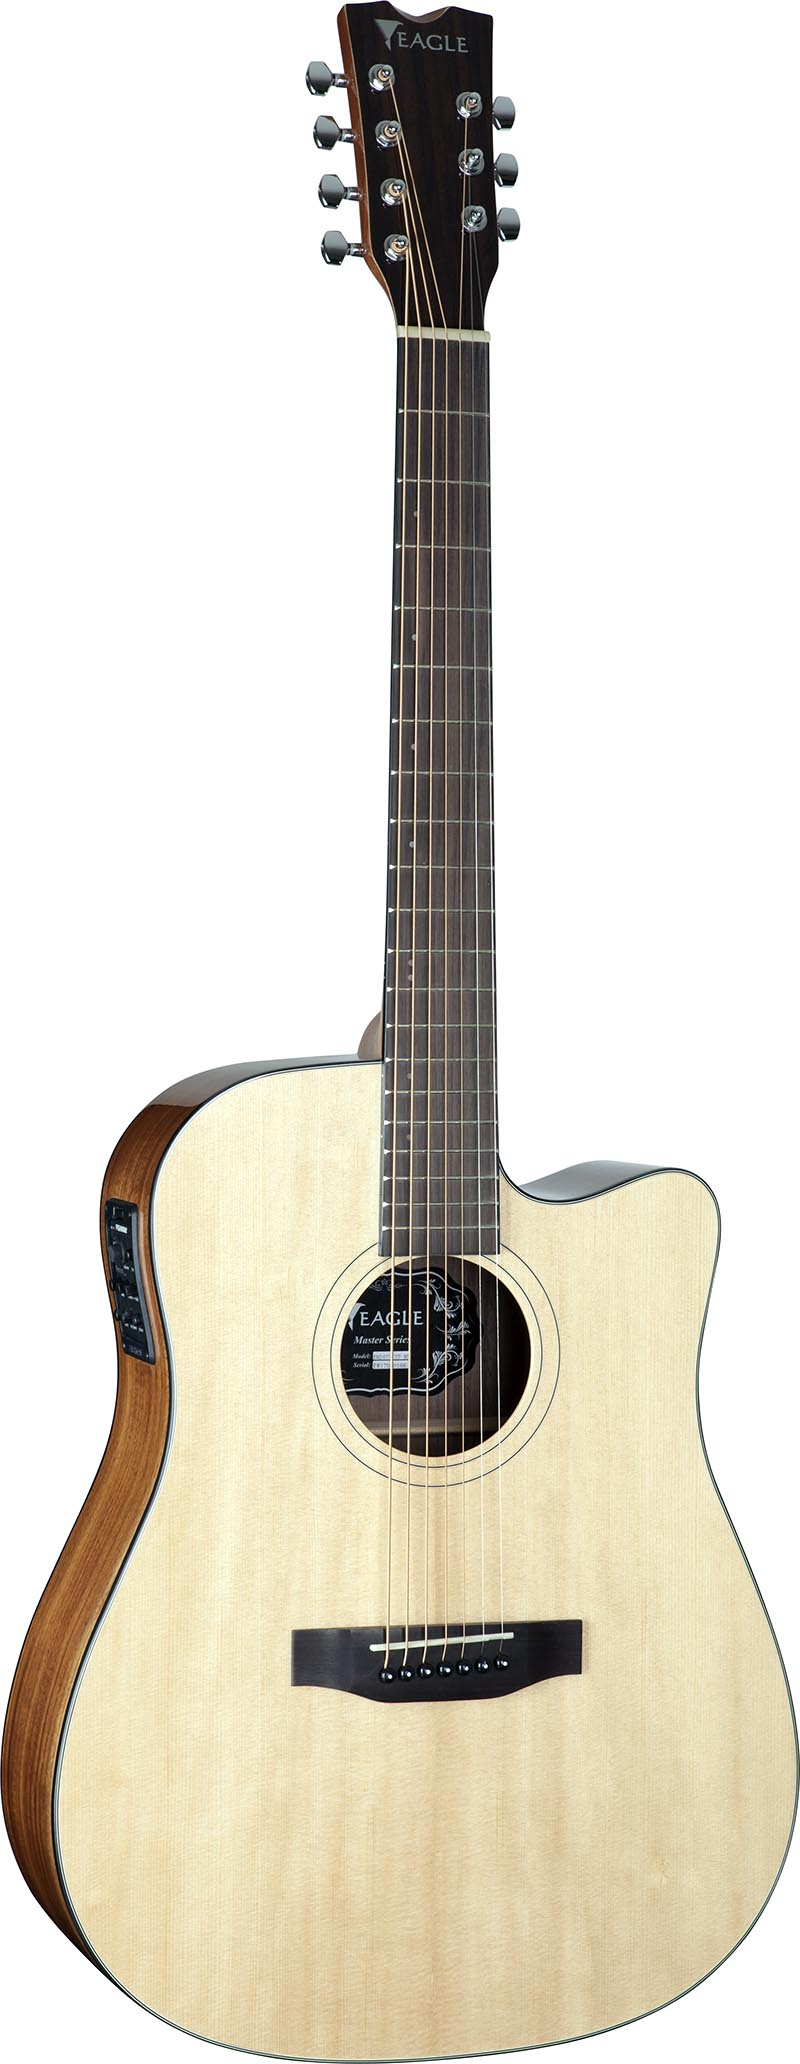 emd477ce7 violao 7 cordas folk dreadnought tampo solido eagle emd477ce7 nt natural visao frontal vertical